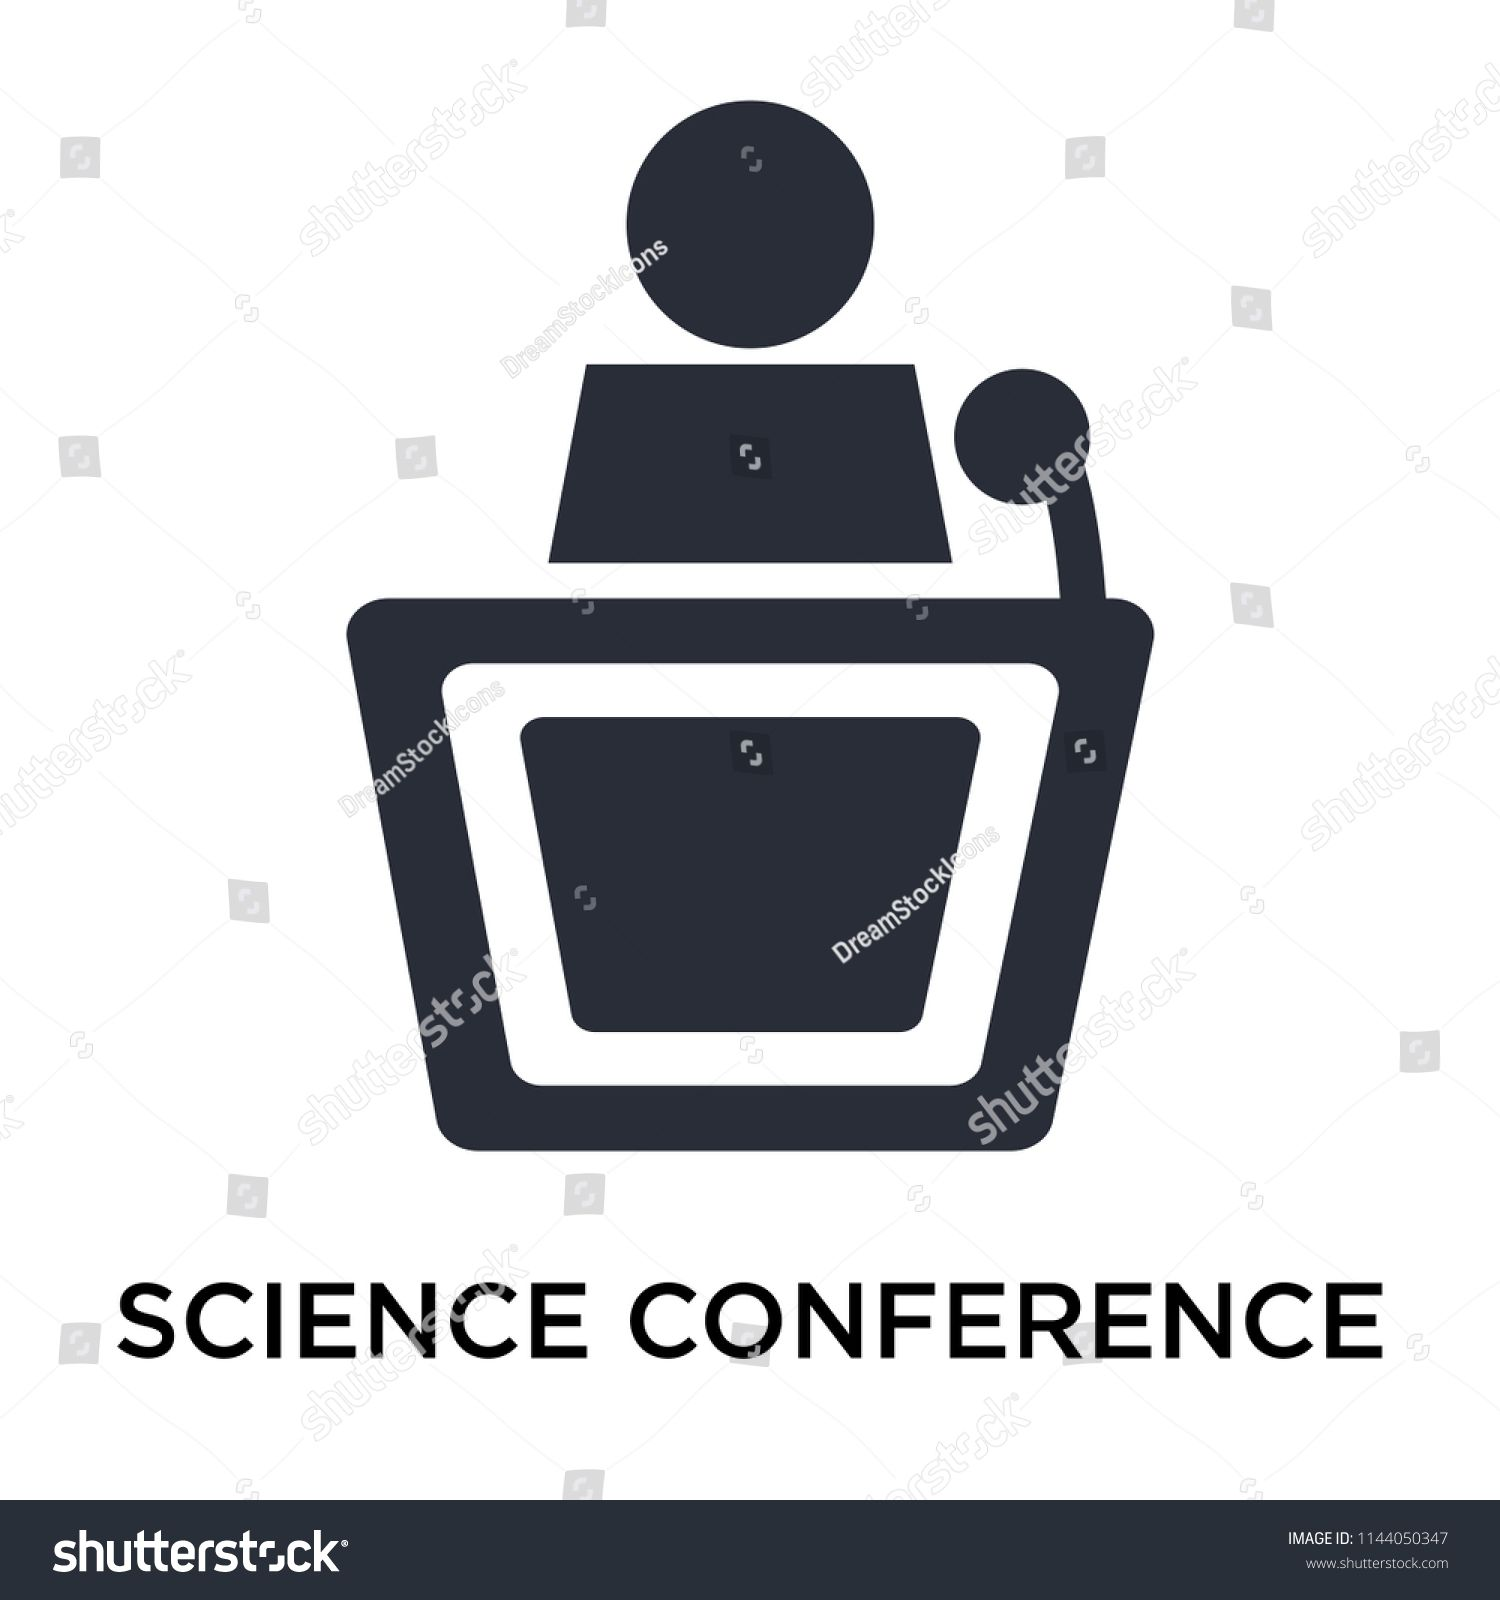 Science Conference icon vector isolated on white